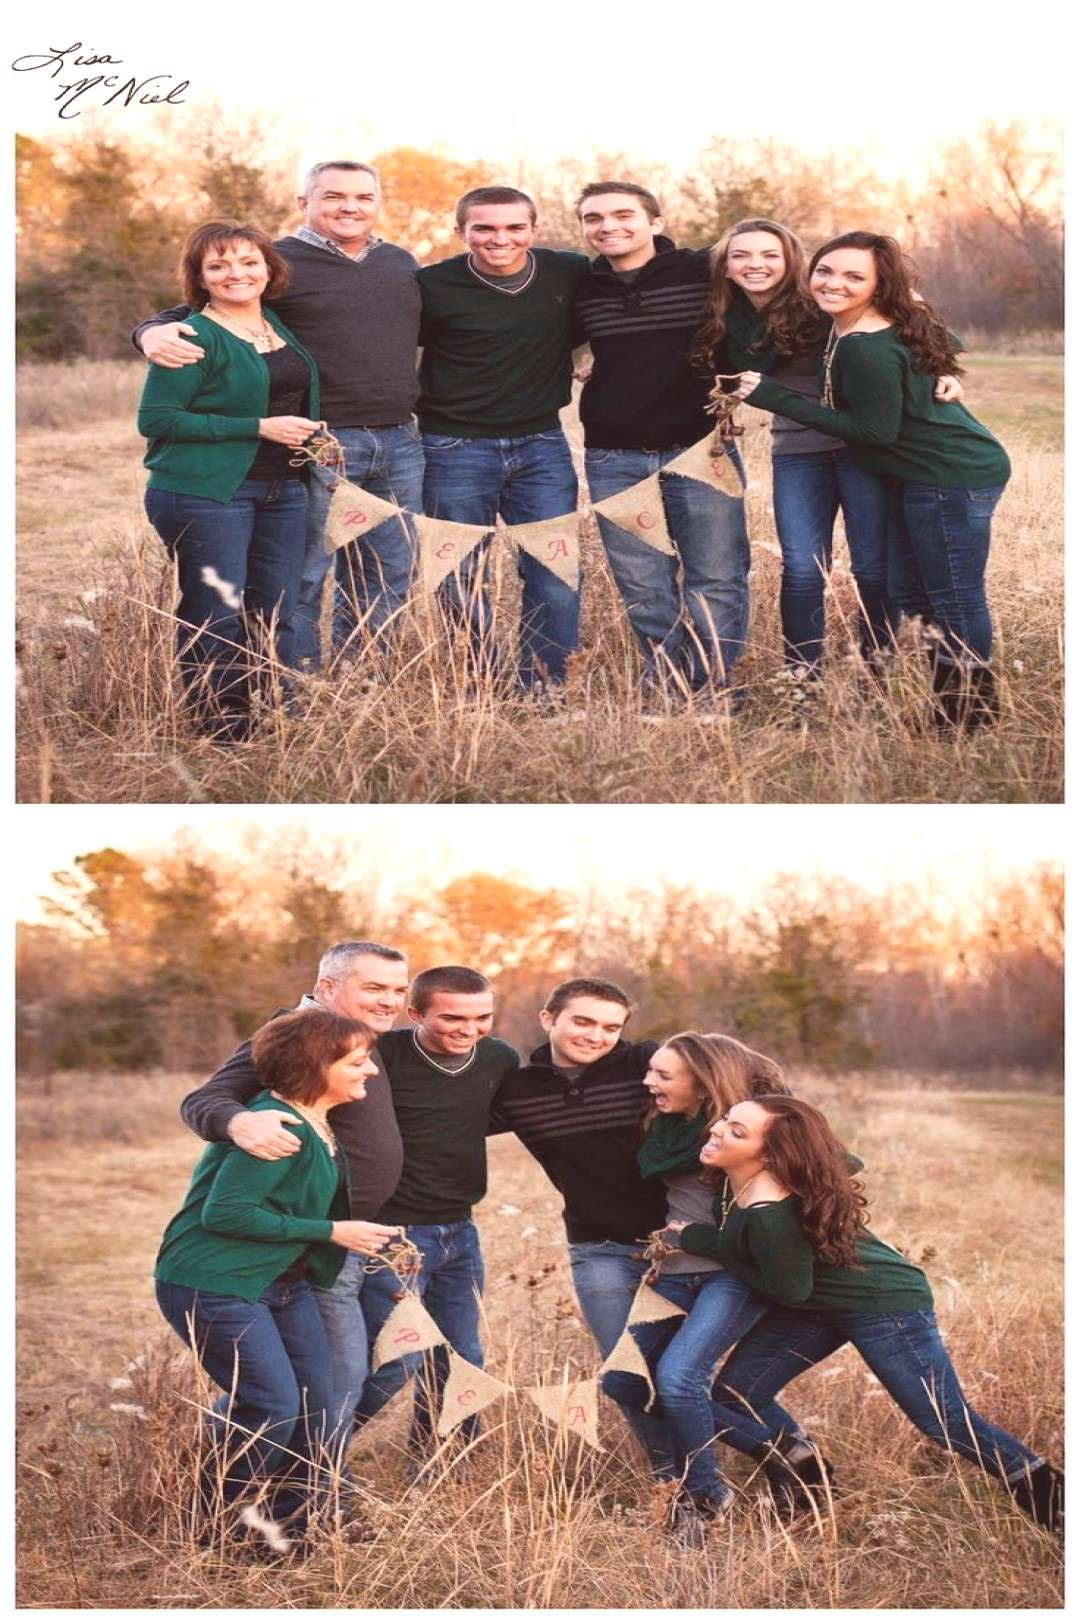 Food photography  fall large family photos, large family photo shoot ideas colors winter, large f